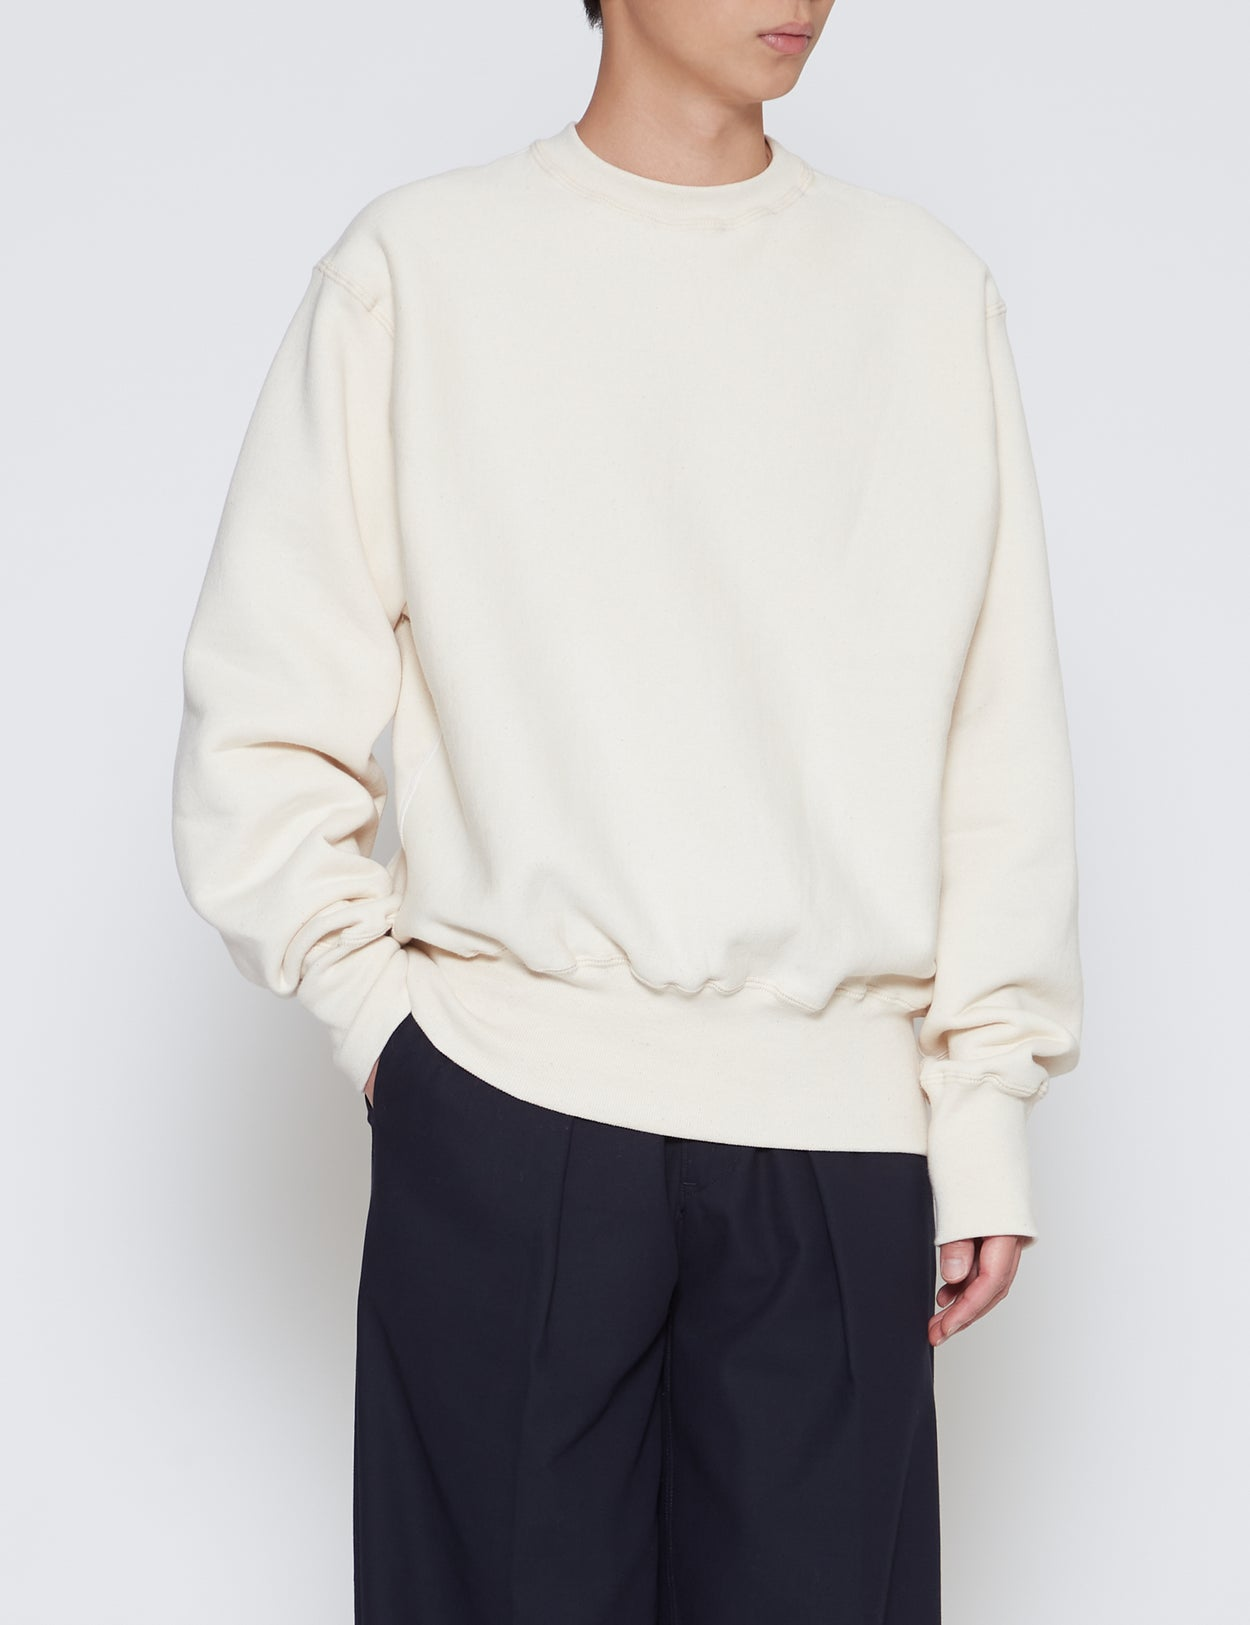 NATURAL CROSS KNIT HEAVYWEIGHT CREWNECK SWEATSHIRT